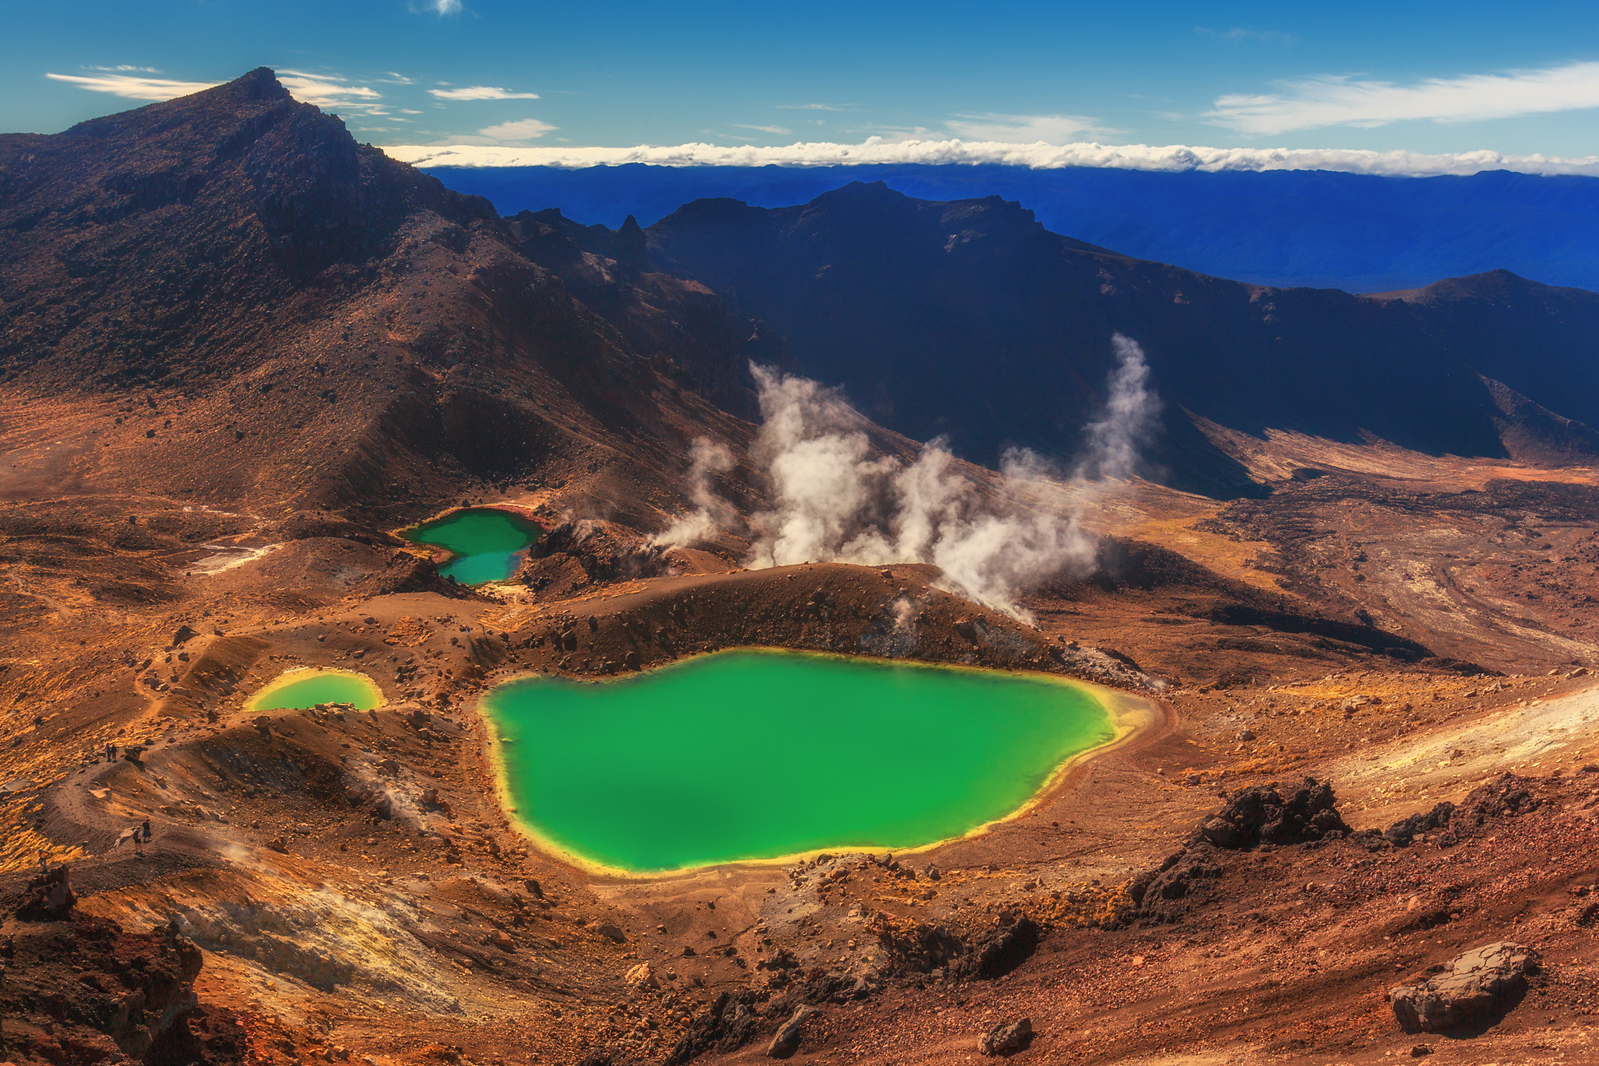 The harsh but beautiful landscape of the Tongariro Crossing on the North Island of New Zealand